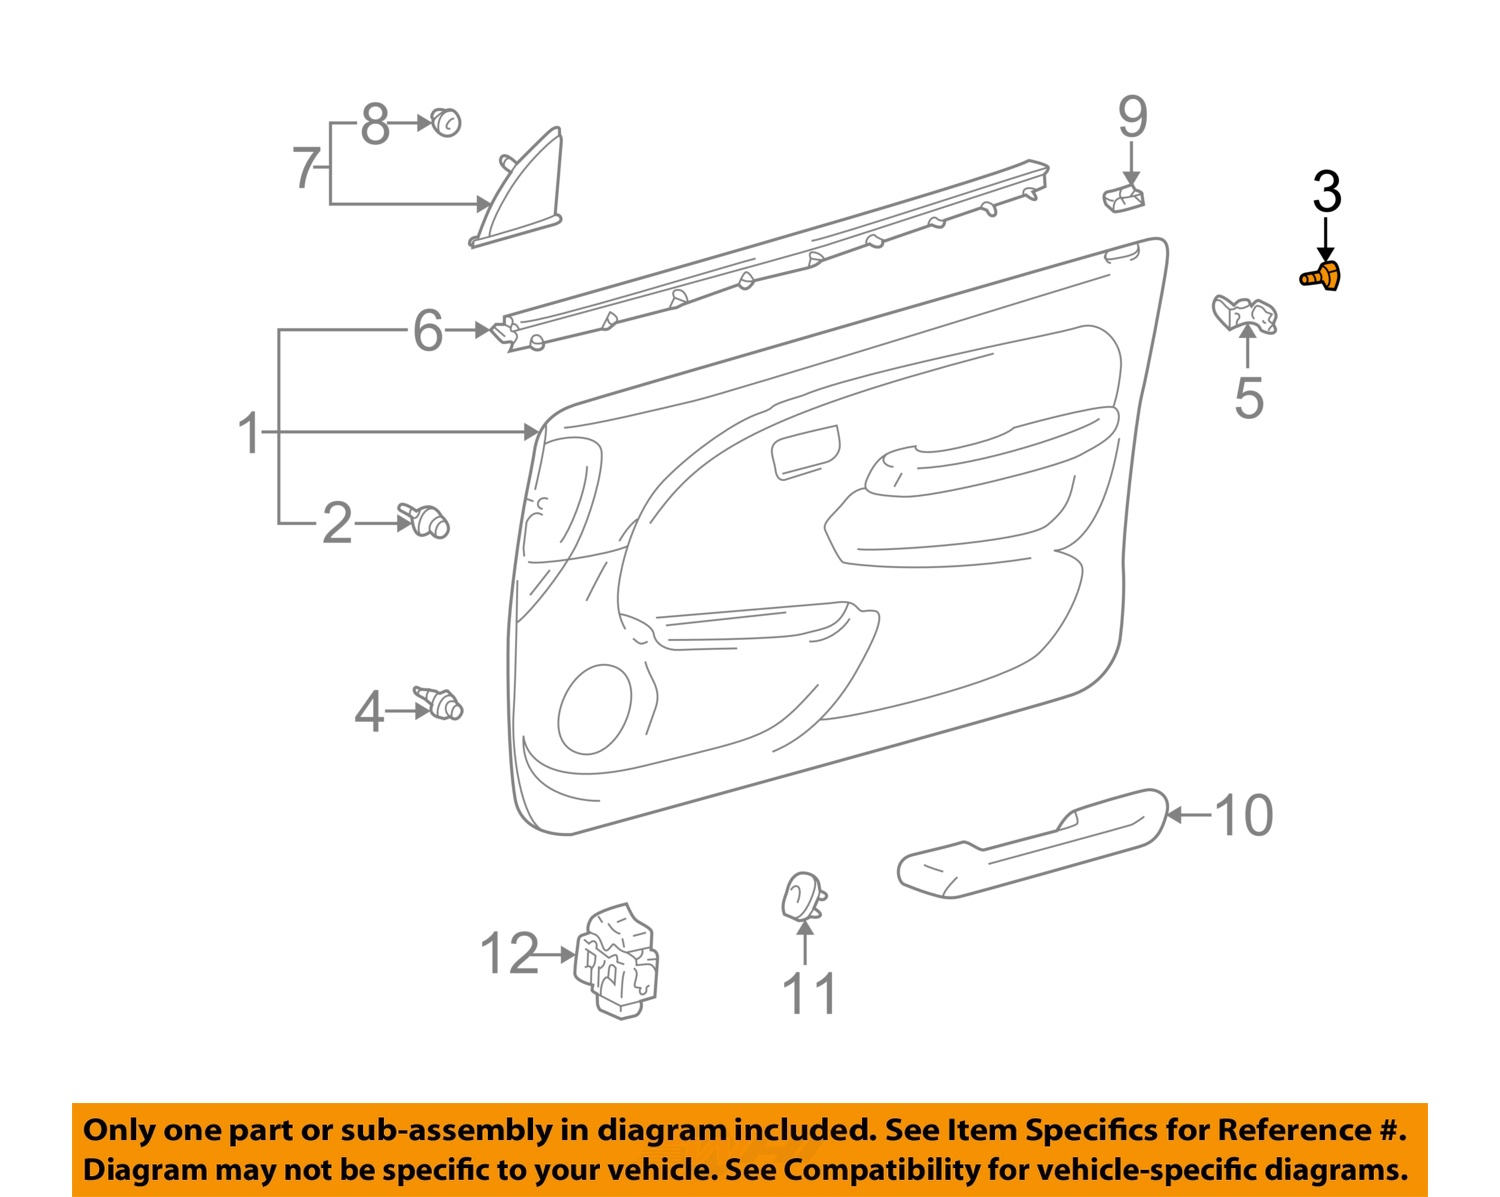 Toyota oem 4runner interior front door trim panel assembly - Toyota 4runner interior trim parts ...